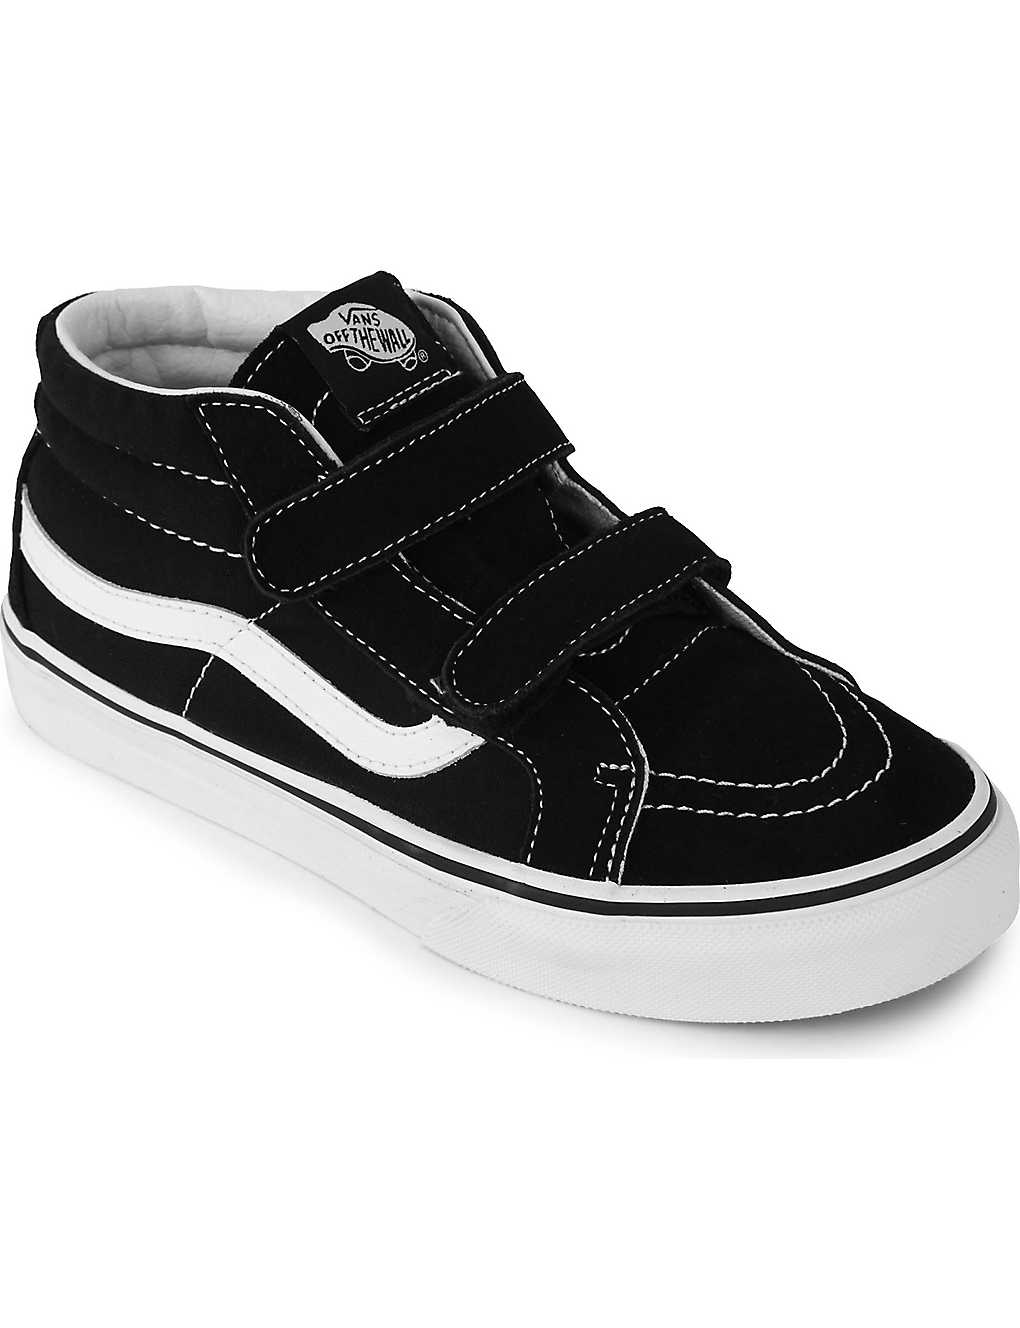 354e7192af205d VANS - Sk8-Mid Reissue V suede trainers 7-9 years